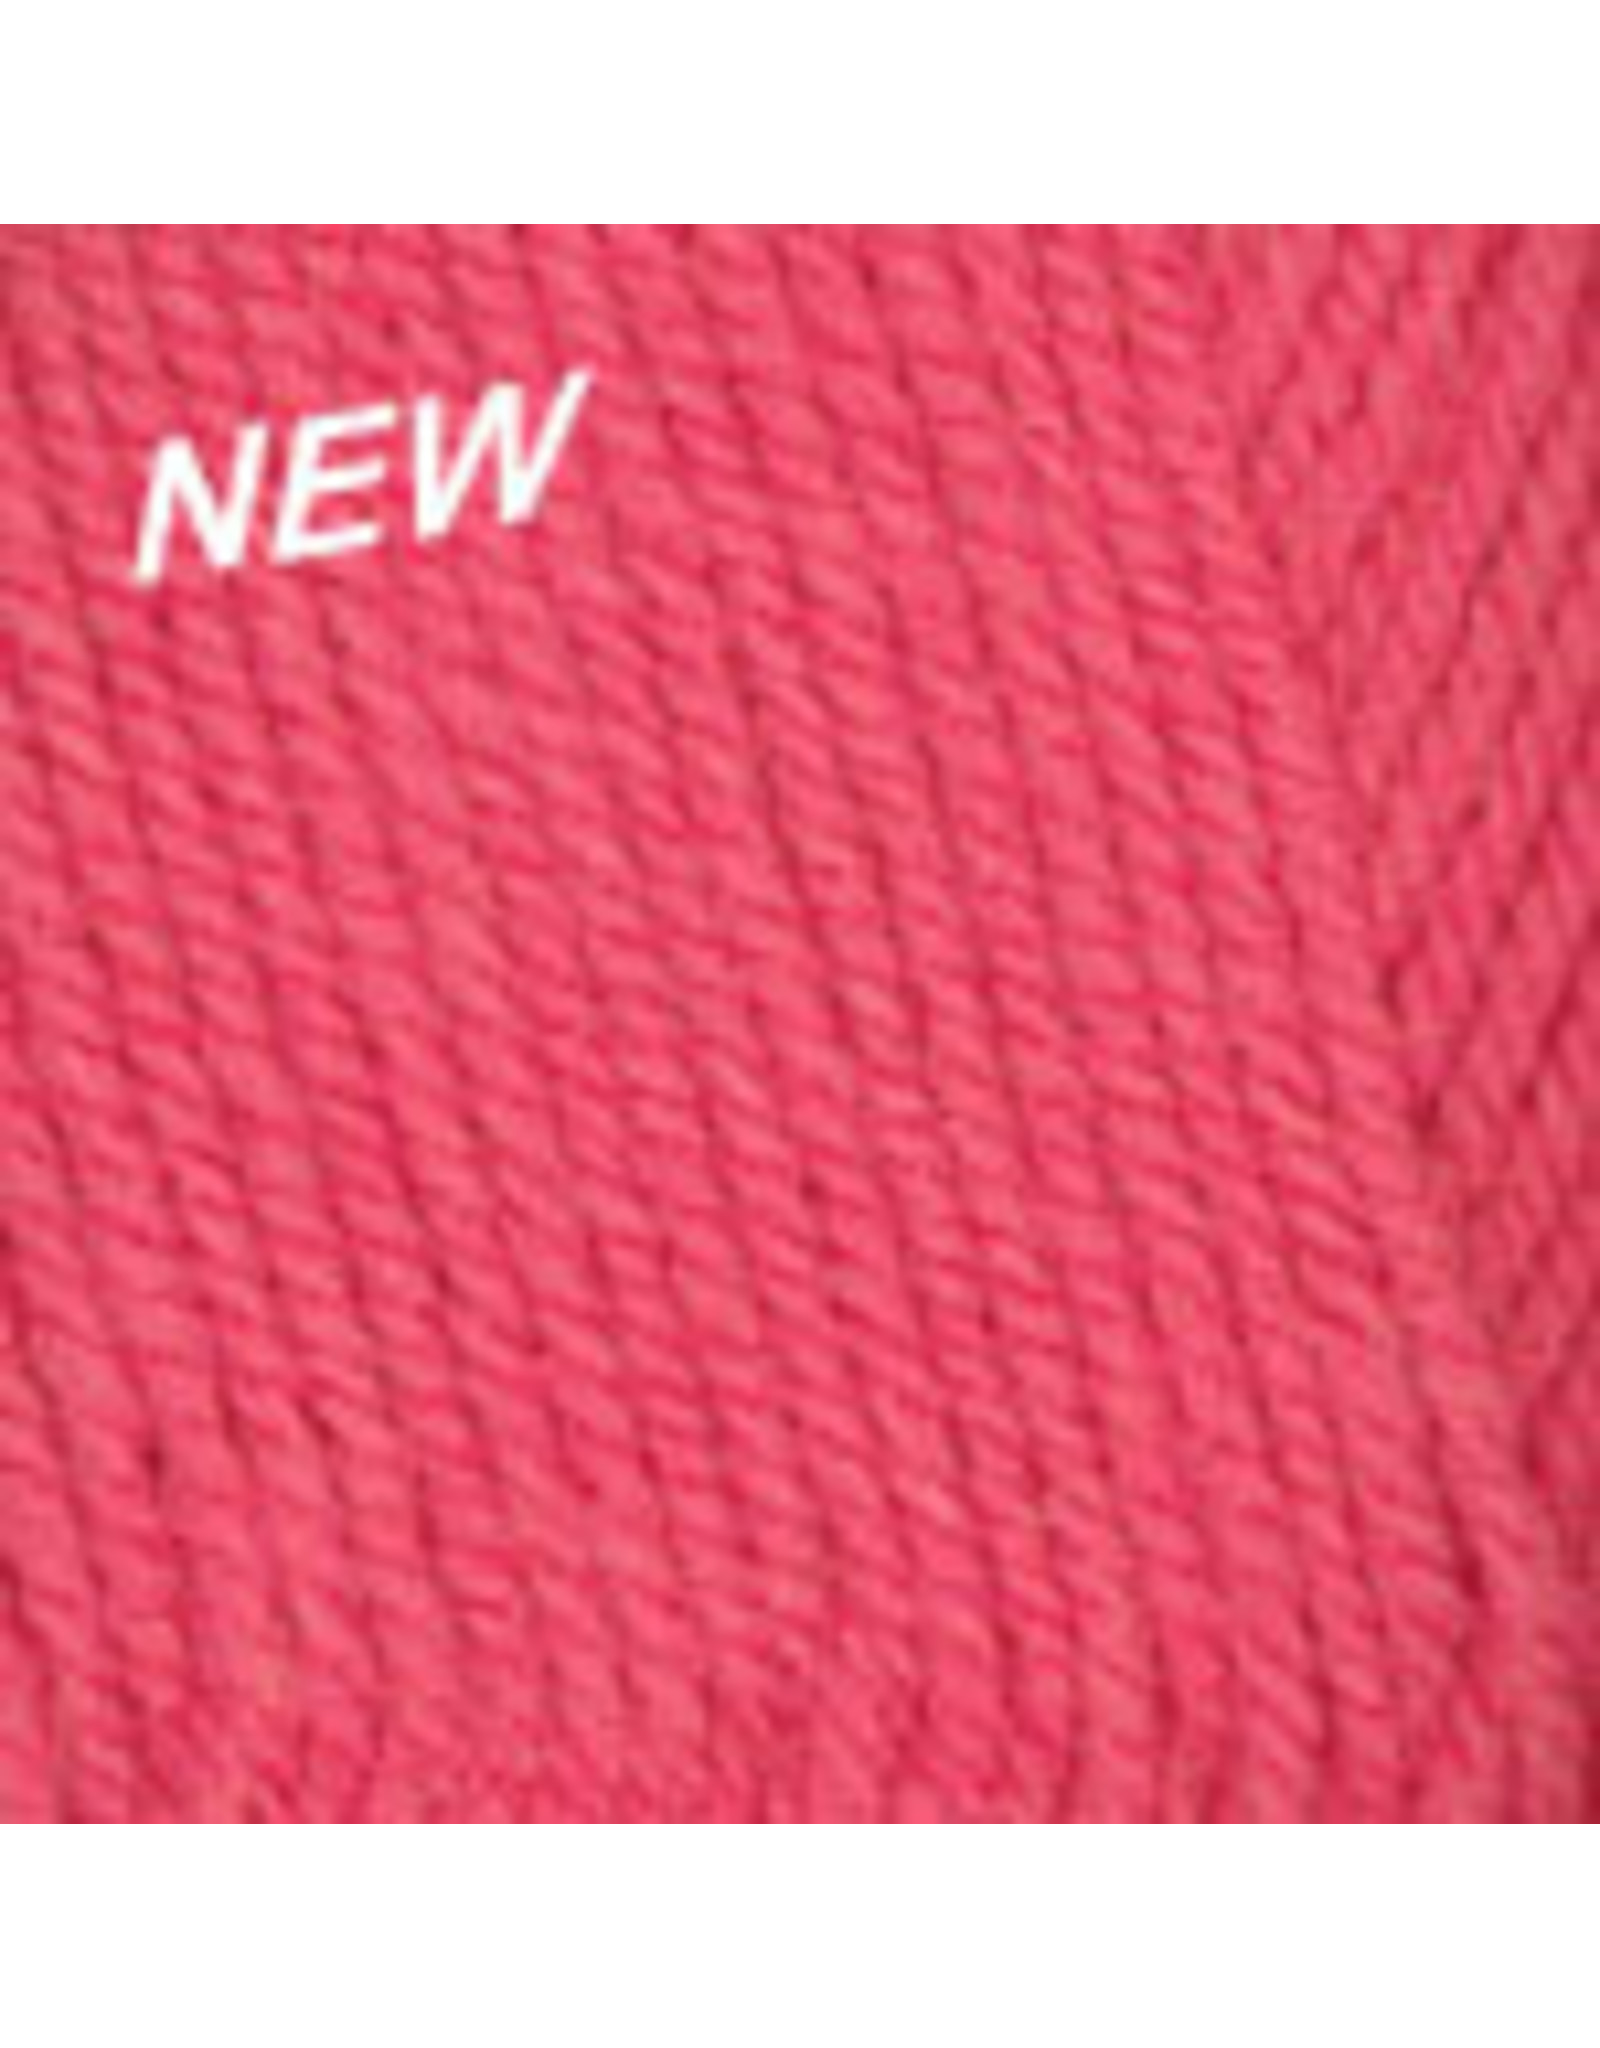 Plymouth Yarn Plymouth: Encore Worsted, (Pinks)